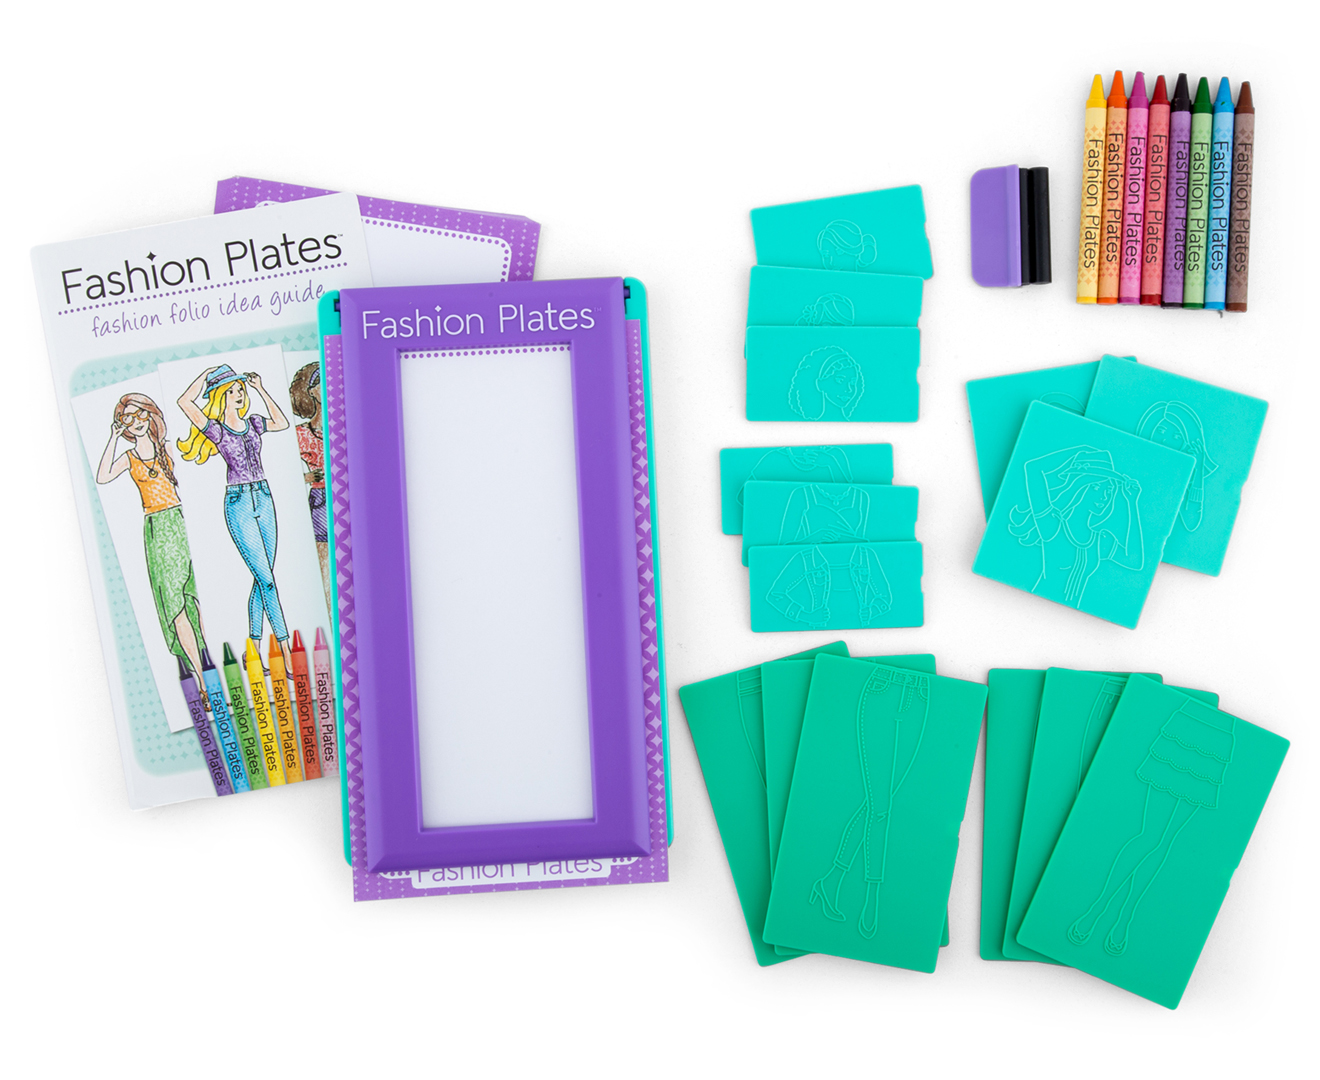 Renewed Fashion Design Studio Rubbing Plate Activity Kit Arts Crafts 9 Plates 4 Pencils Crayon Great Gift For Girls And Boys Best For 5 6 7 Year Olds And Up